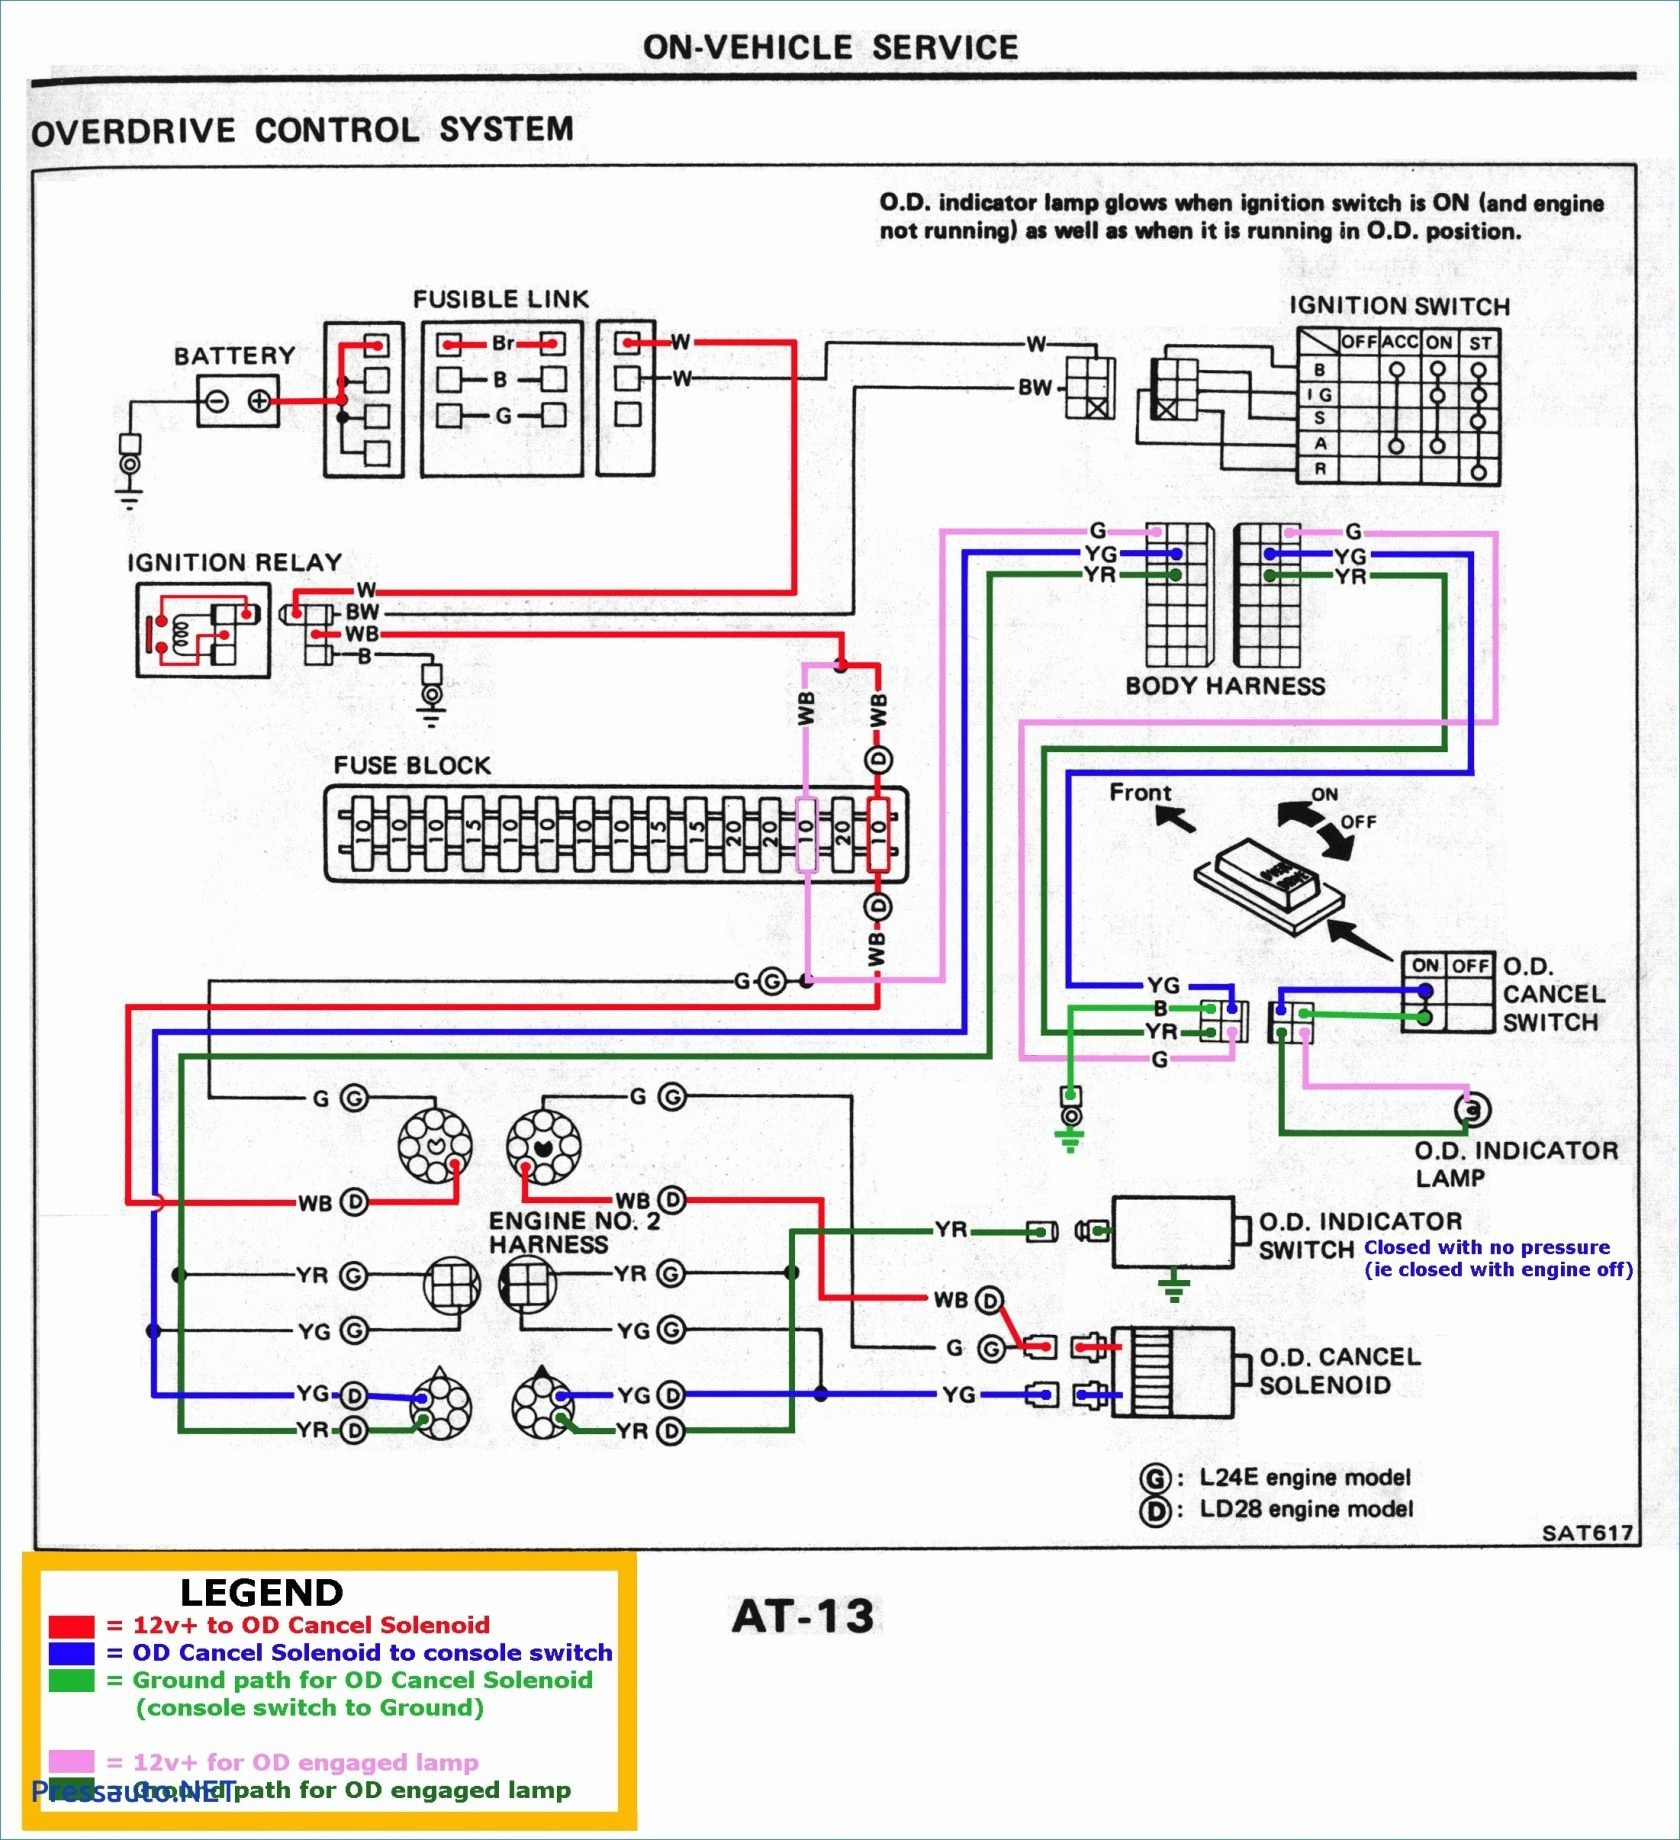 yardman solenoid wiring diagram    wiring       diagram    for murray riding lawn mower    solenoid        wiring       diagram    for murray riding lawn mower    solenoid